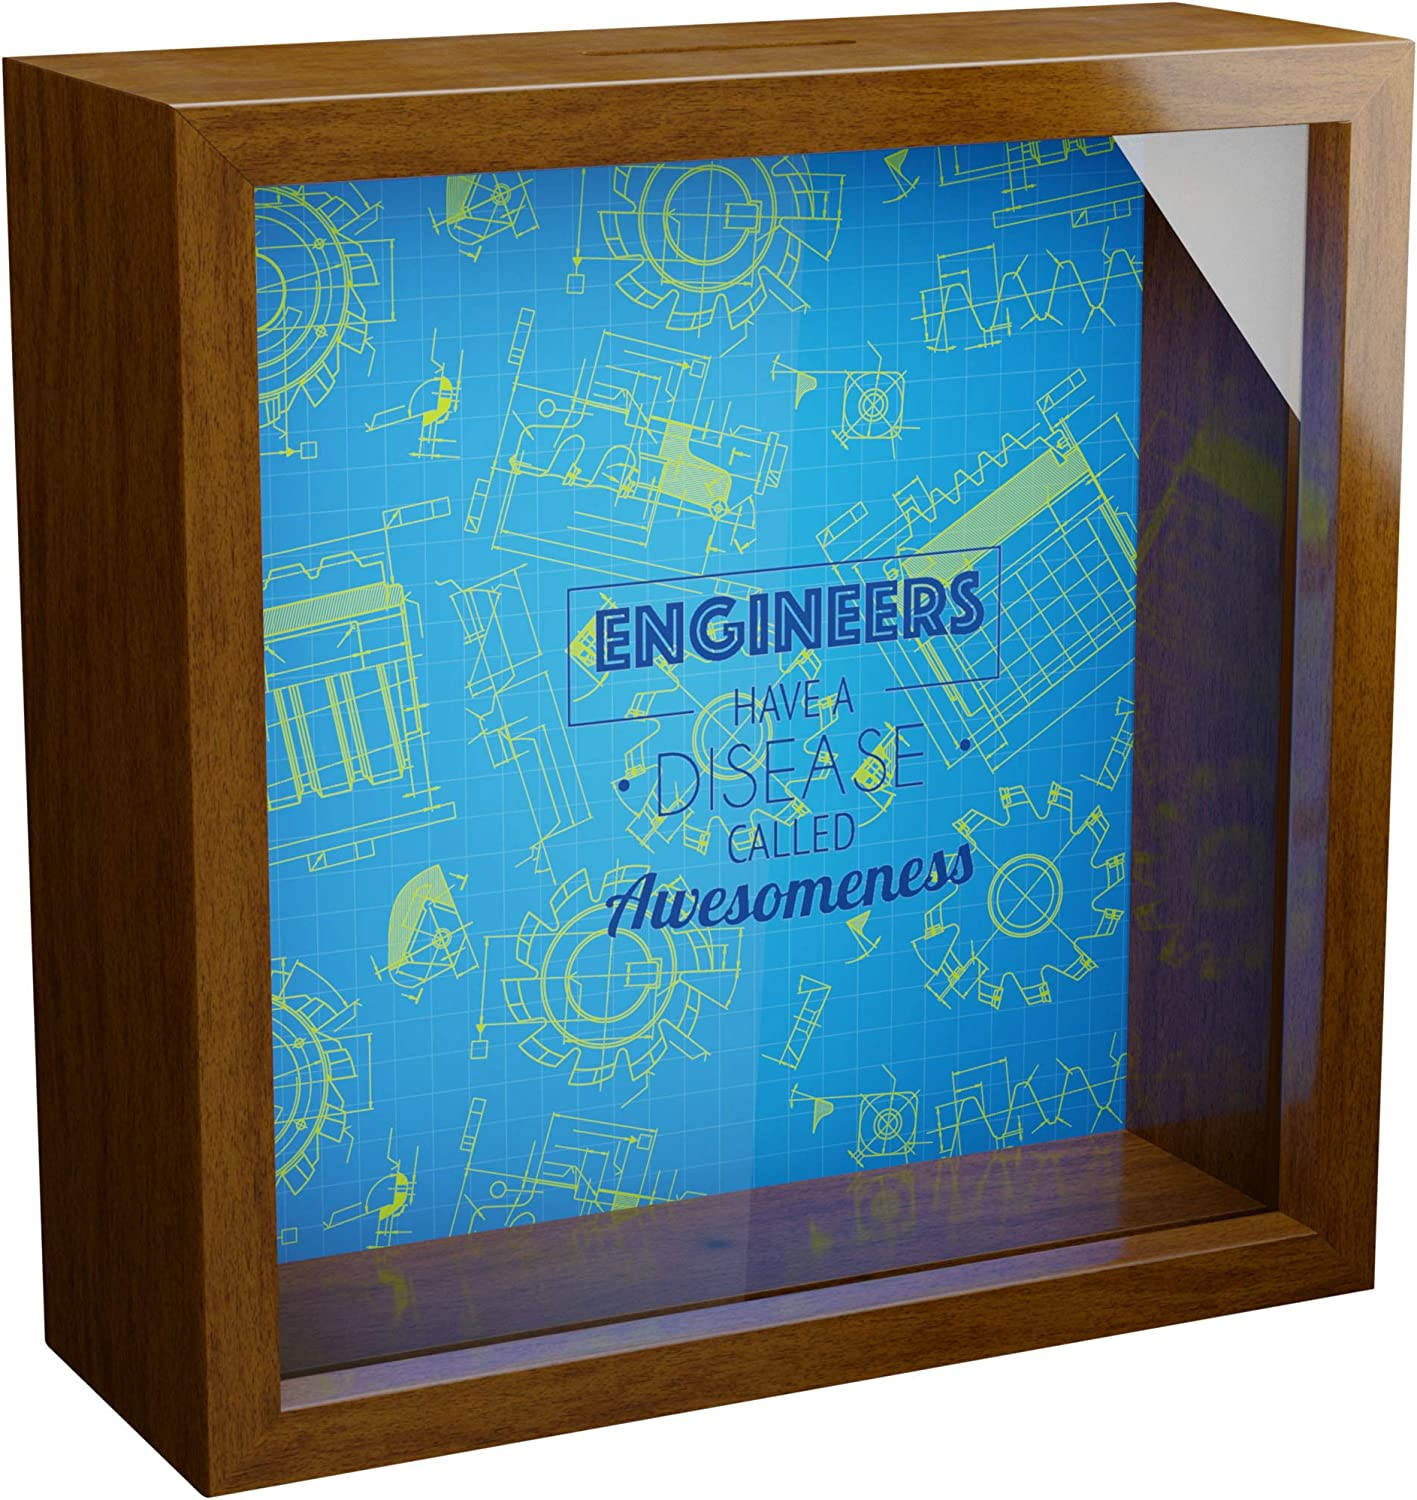 Engineer Gifts | 6x6x2 Memorabilia Shadow Box with Glass Front | Framed Wooden Gift for Engineers | Engineering Wall Decor Frame | Themed Keepsake Box | Ideal to Collect Special Items